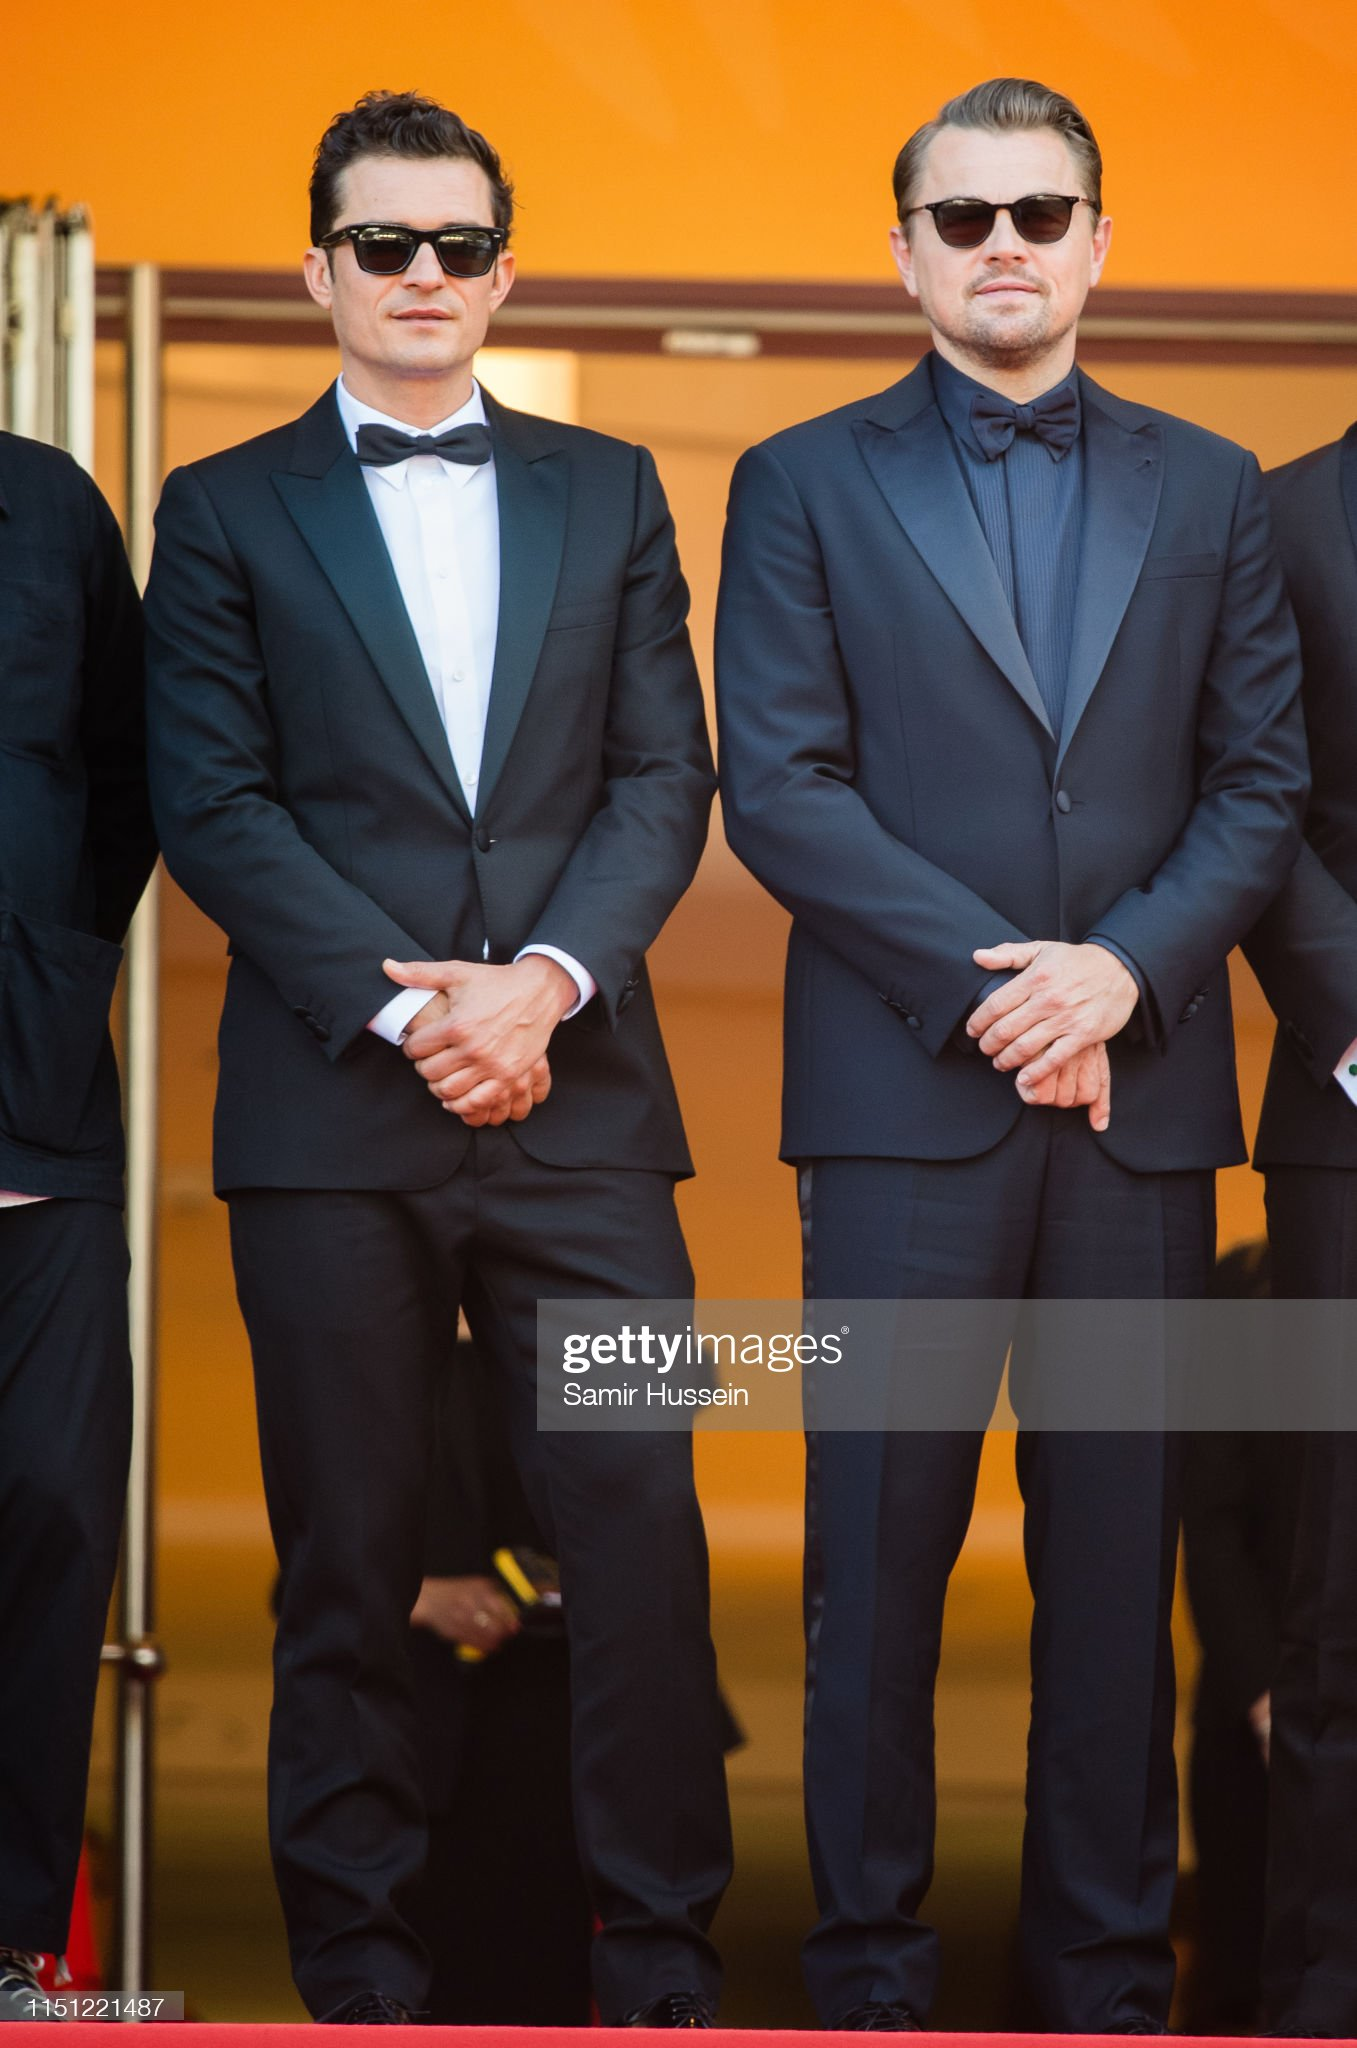 ¿Cuánto mide Orlando Bloom? - Altura - Real height Leonardo-dicaprio-and-orlando-bloom-attend-the-screening-of-the-the-picture-id1151221487?s=2048x2048